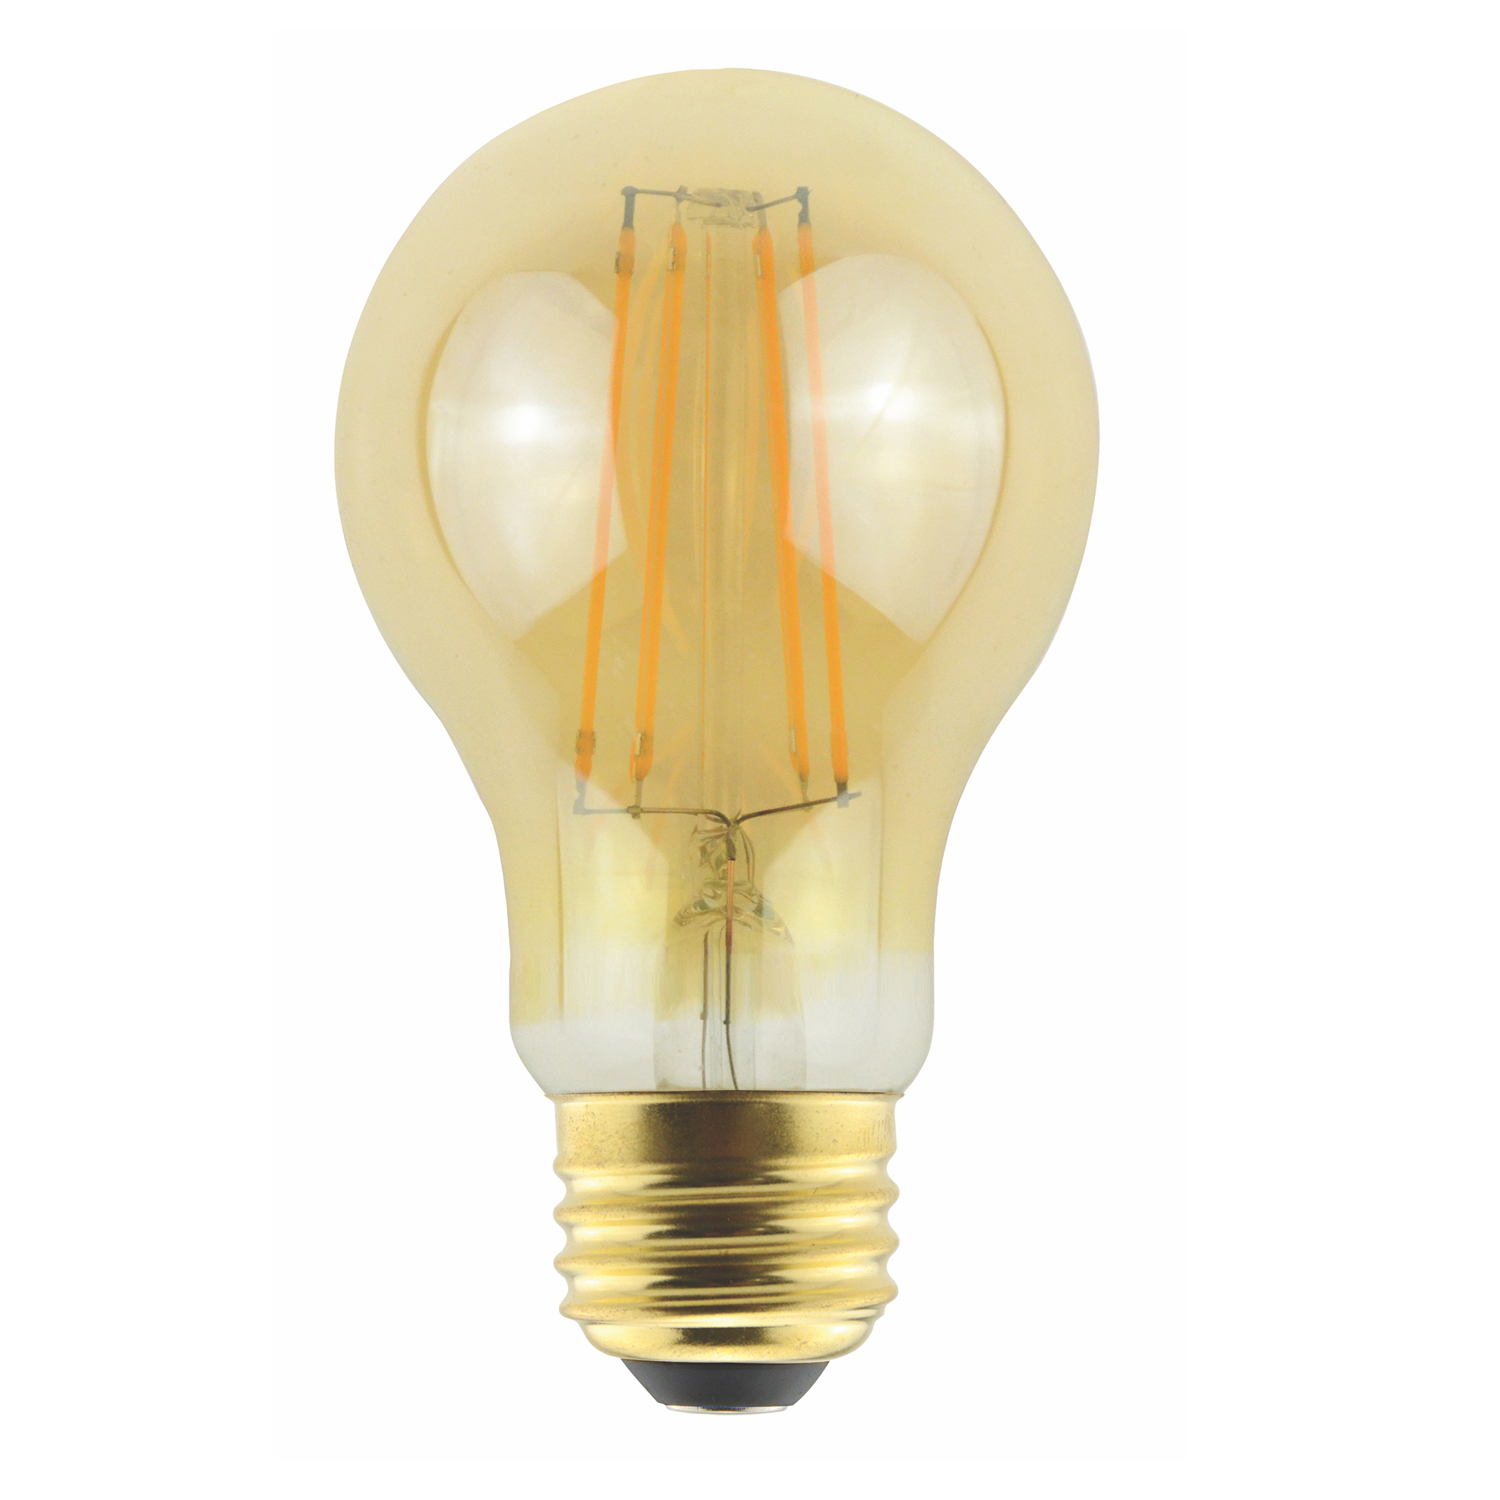 A19AMB8ANT/820/LED2 85041 A19 120V 9W 2000K E26 AMBER ProLED